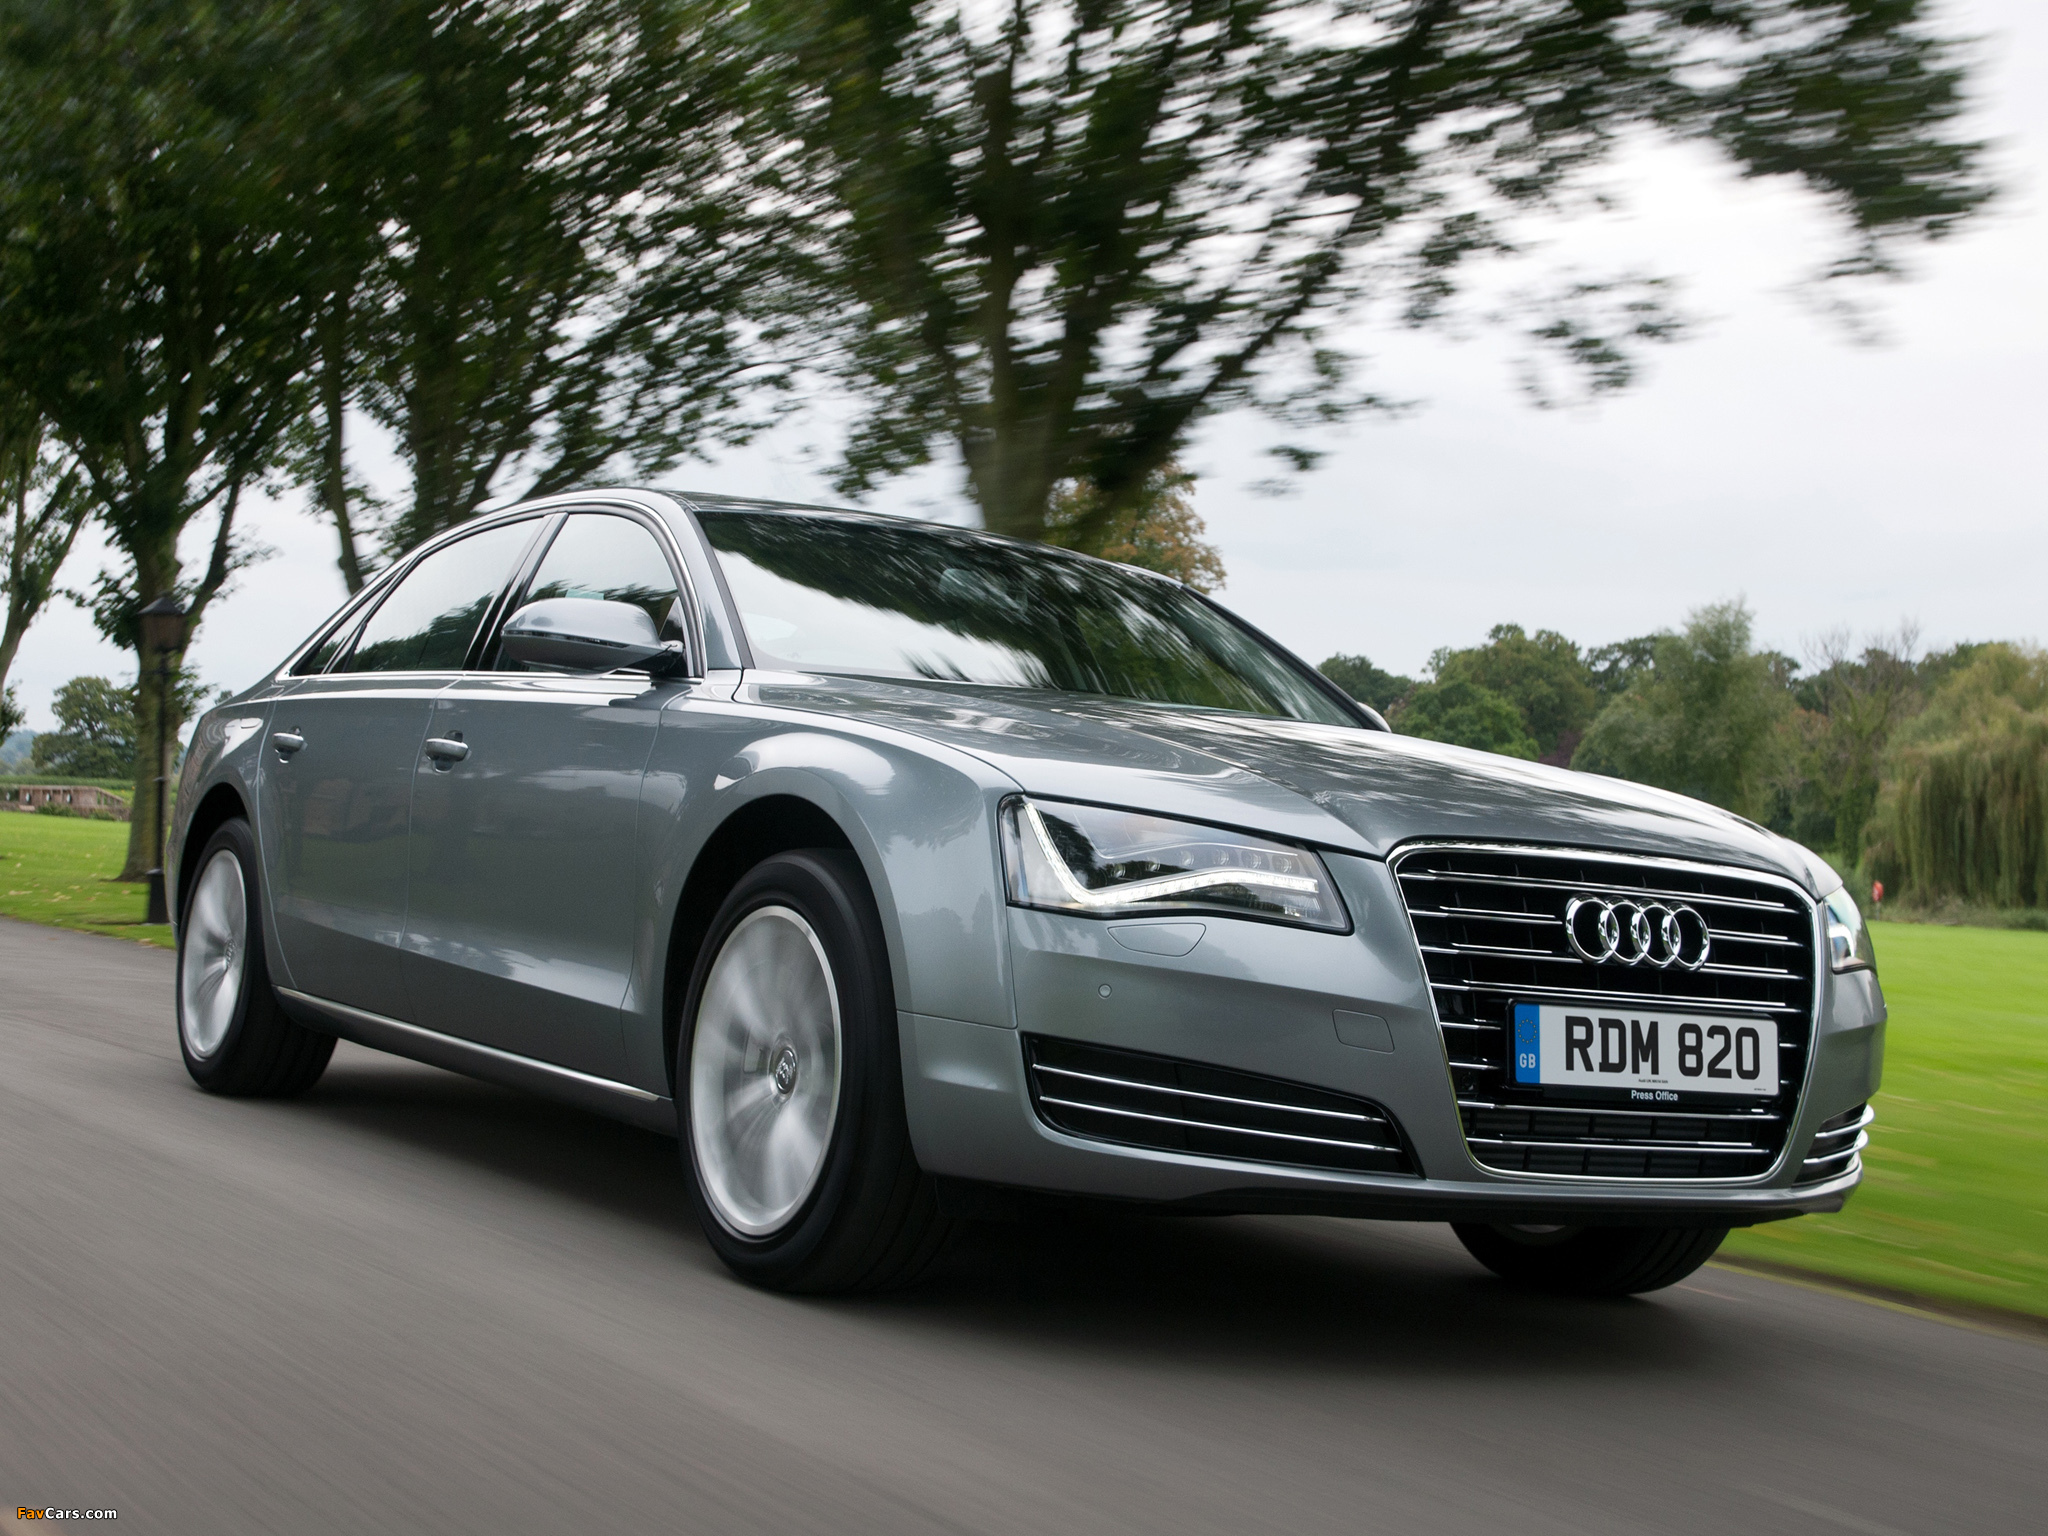 Photos Of Audi A8l 4 2 Tdi Uk Spec D4 2010 2048x1536